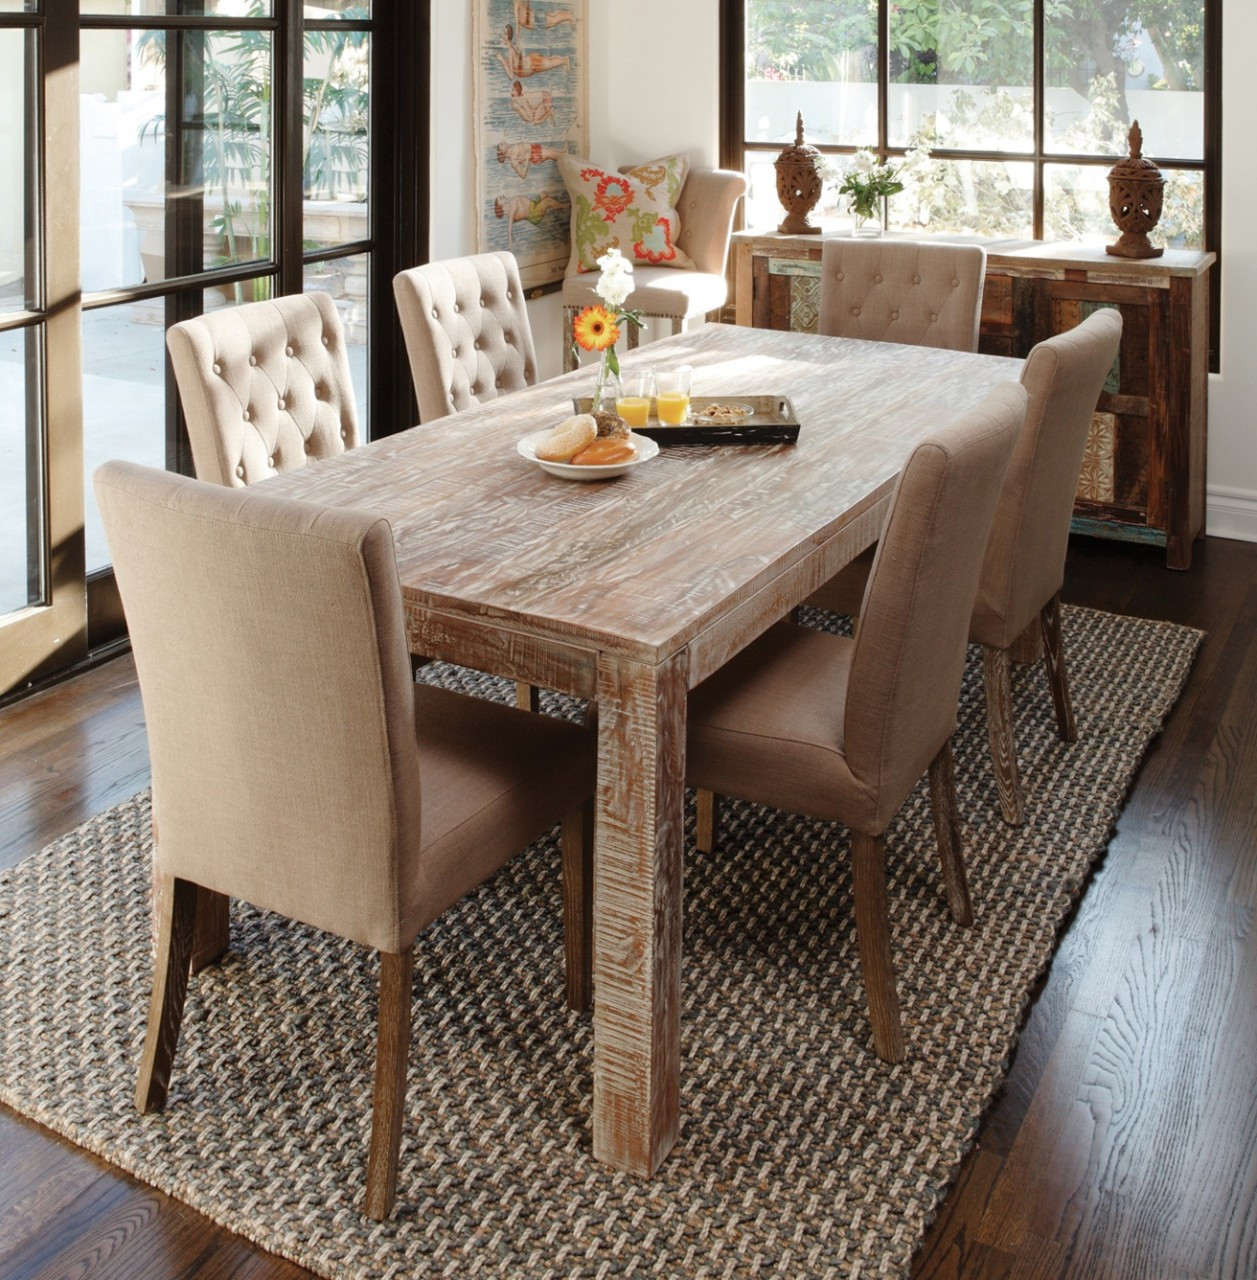 Dining Room Tables: Hampton Farmhouse Dining Room Table 72""